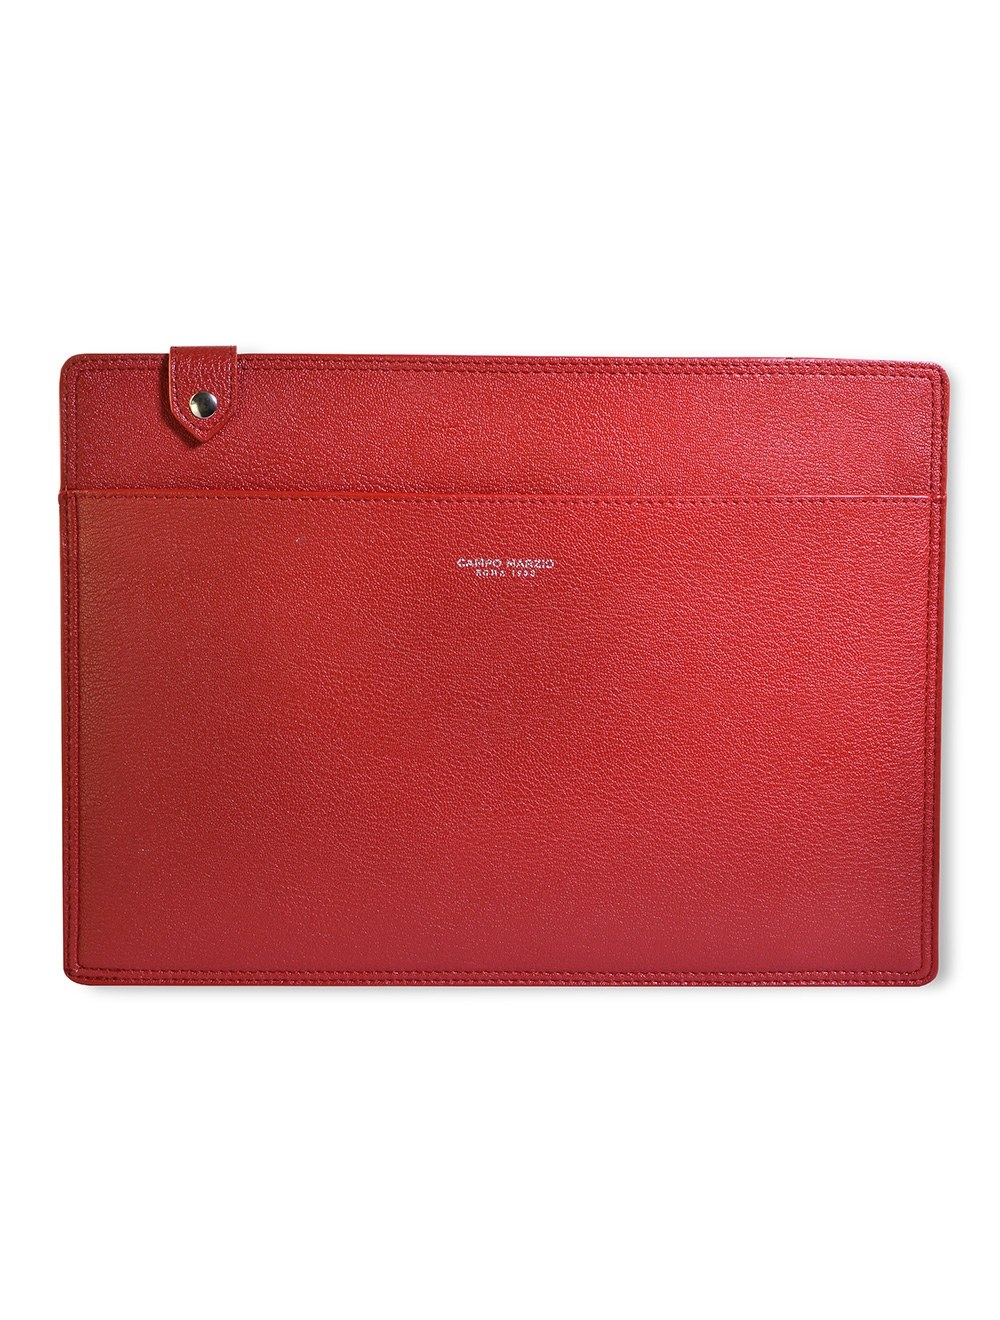 Japanese Document Holder Double Color - Cherry Red